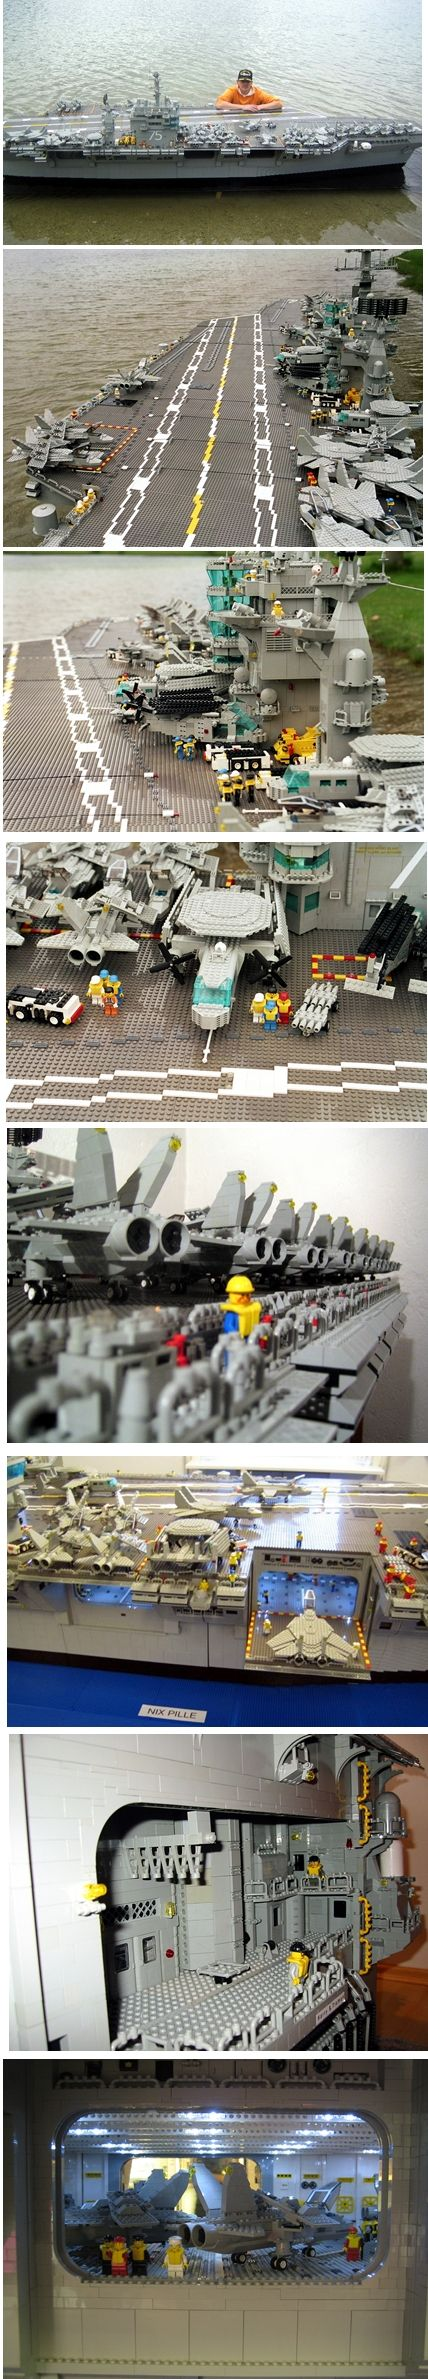 This LEGO Aircraft Carrier - the USS Harry S. Truman (CVN-75) - is 16.5 feet long and almost 4 feet tall. It was built with approximately 200,000 LEGO pieces, and weighs 352 pounds. It has operating electric lights on the flight deck, in the hangar, and inside the aircraft. The hangar elevator is fully movable, as are the radar dishes.